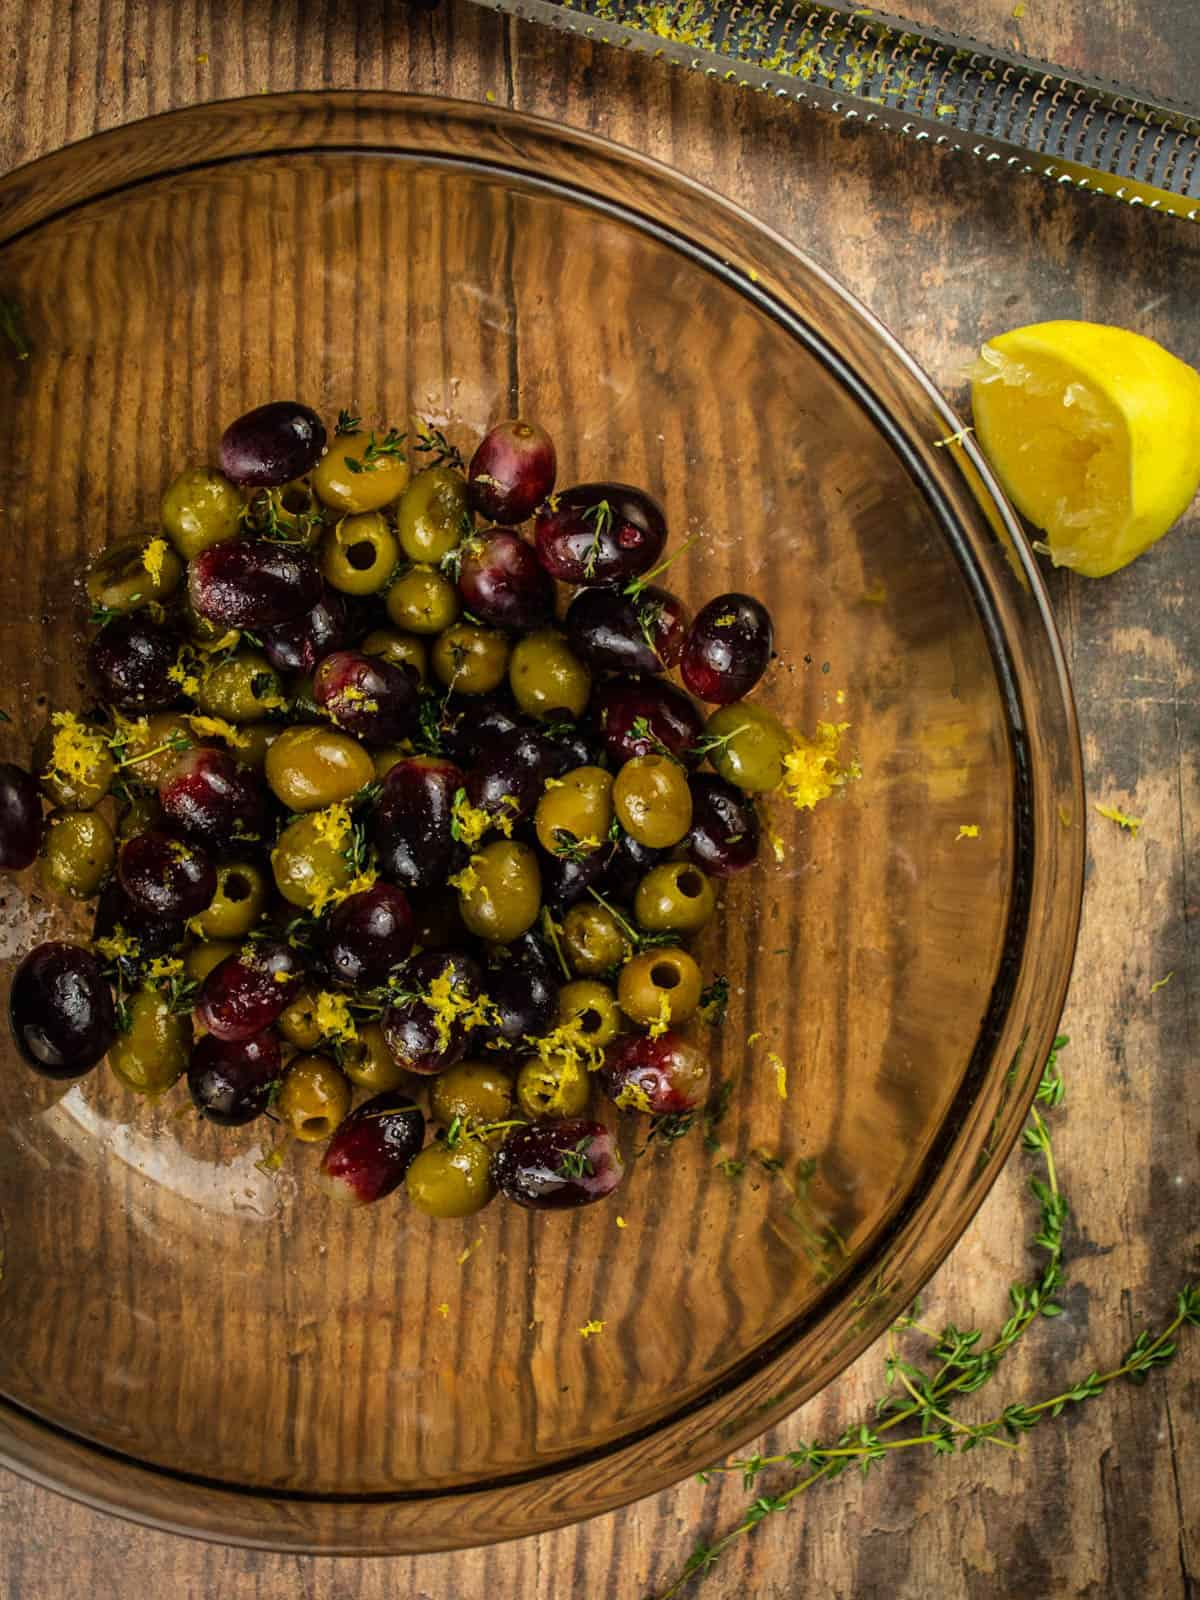 grapes, olives, lemon zest, thyme and olive oil in a bowl